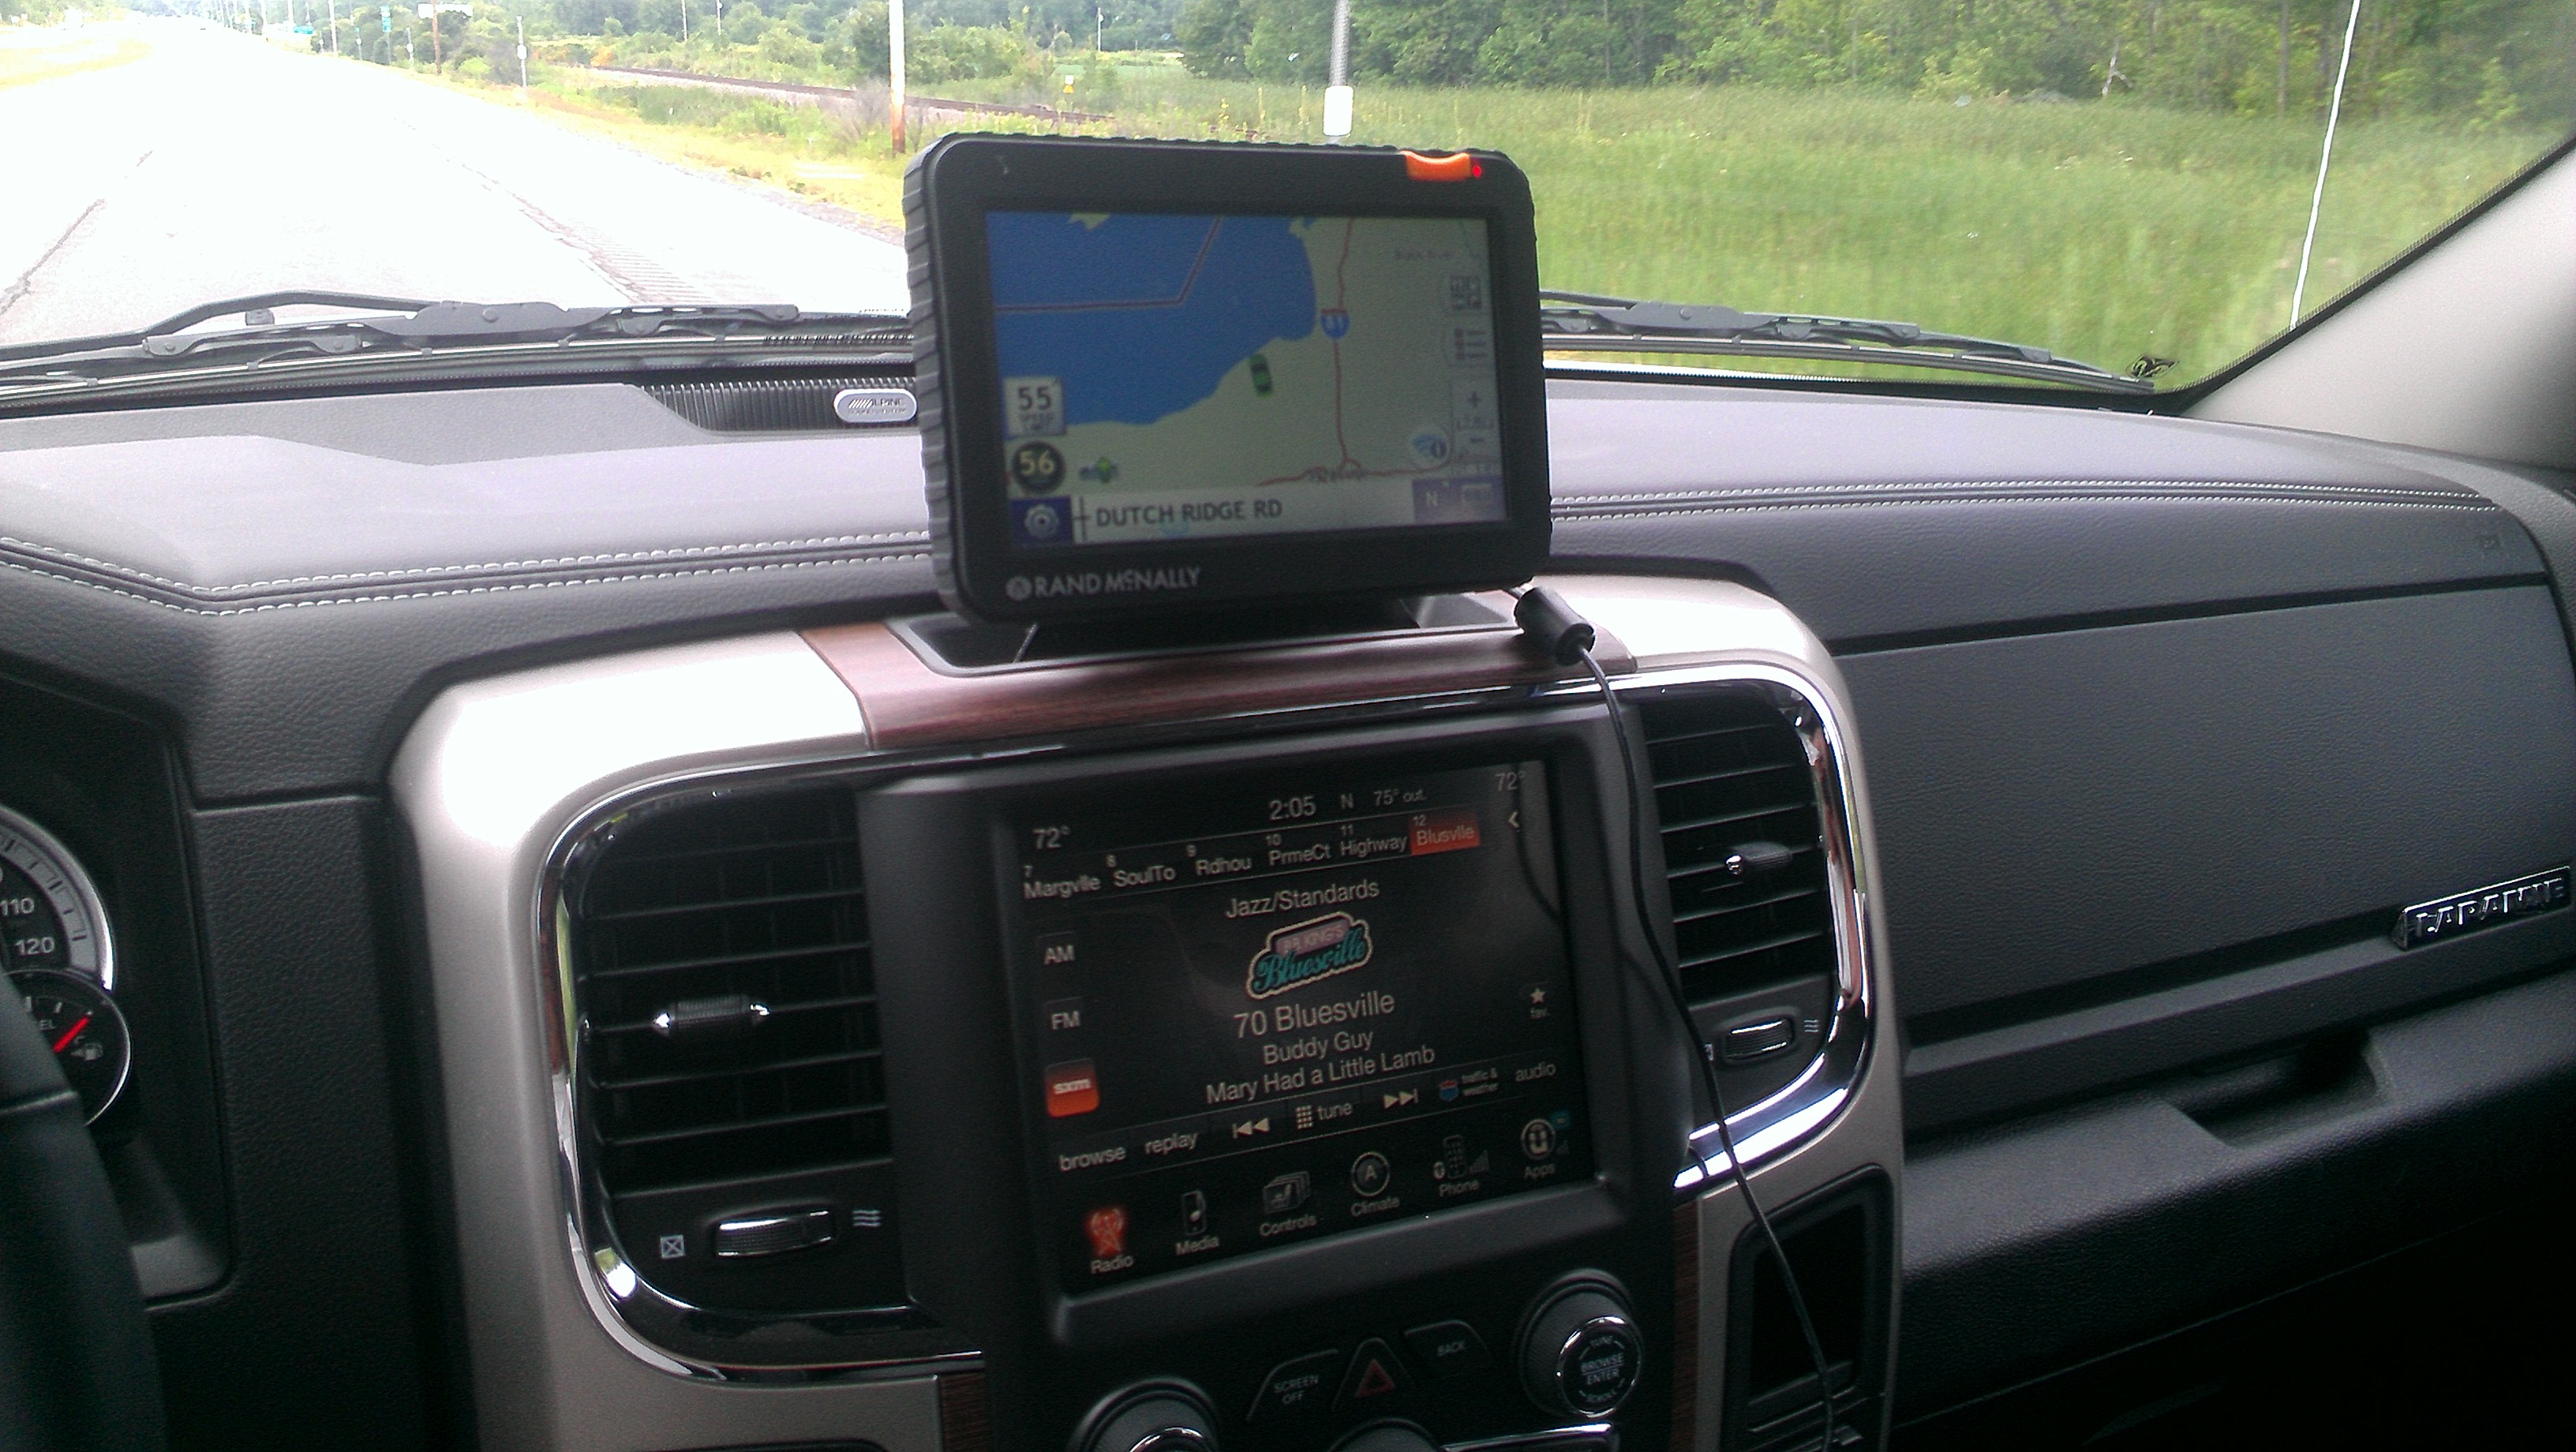 Rand Mcnally Gps >> Looking at Buying... Have a lot of question I want to put to rest!